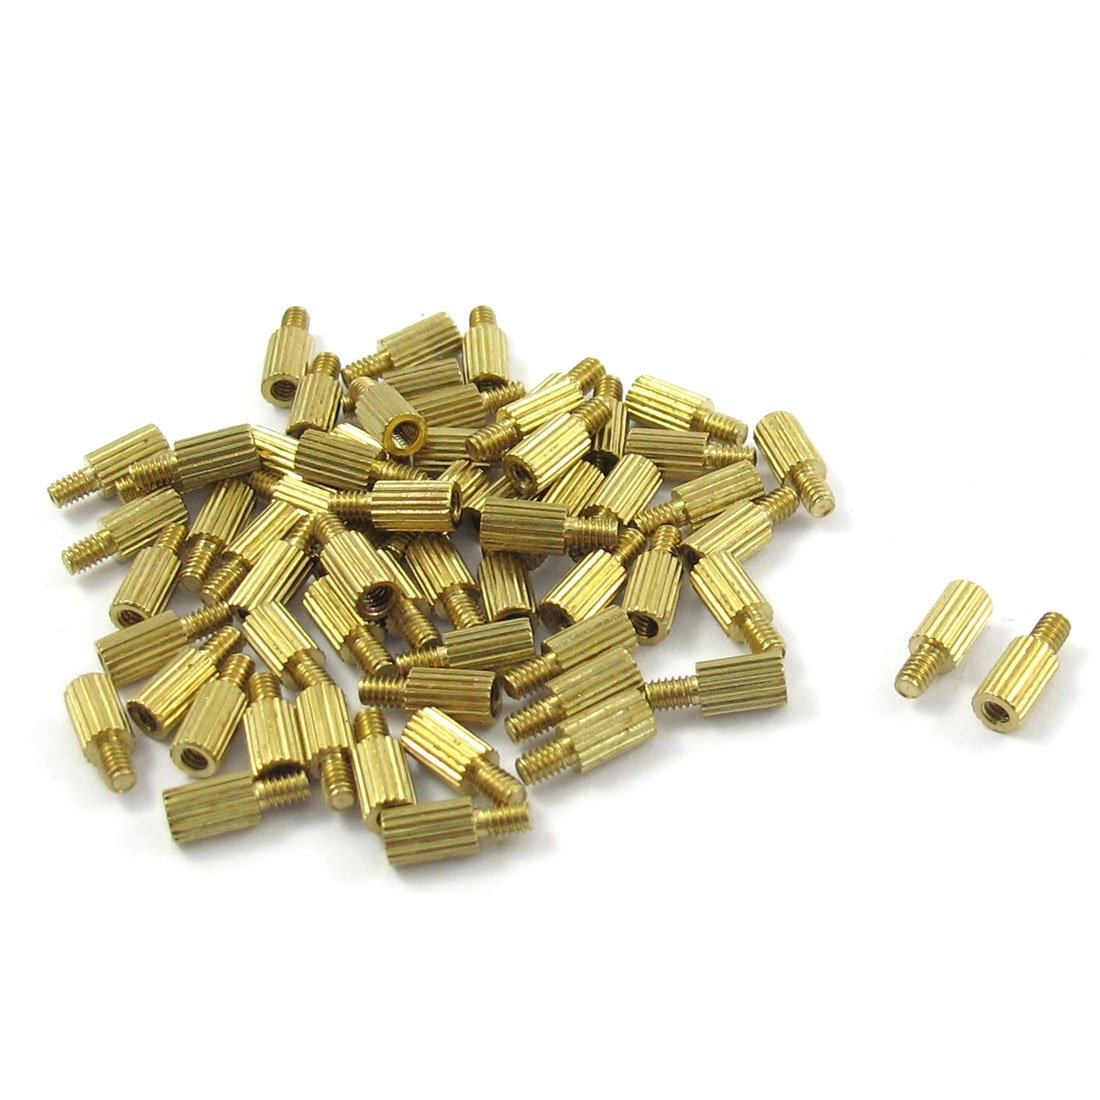 CSS 50 Pcs Male to Female Thread Brass Pillars Standoff Spacer M2x5mmx8mm